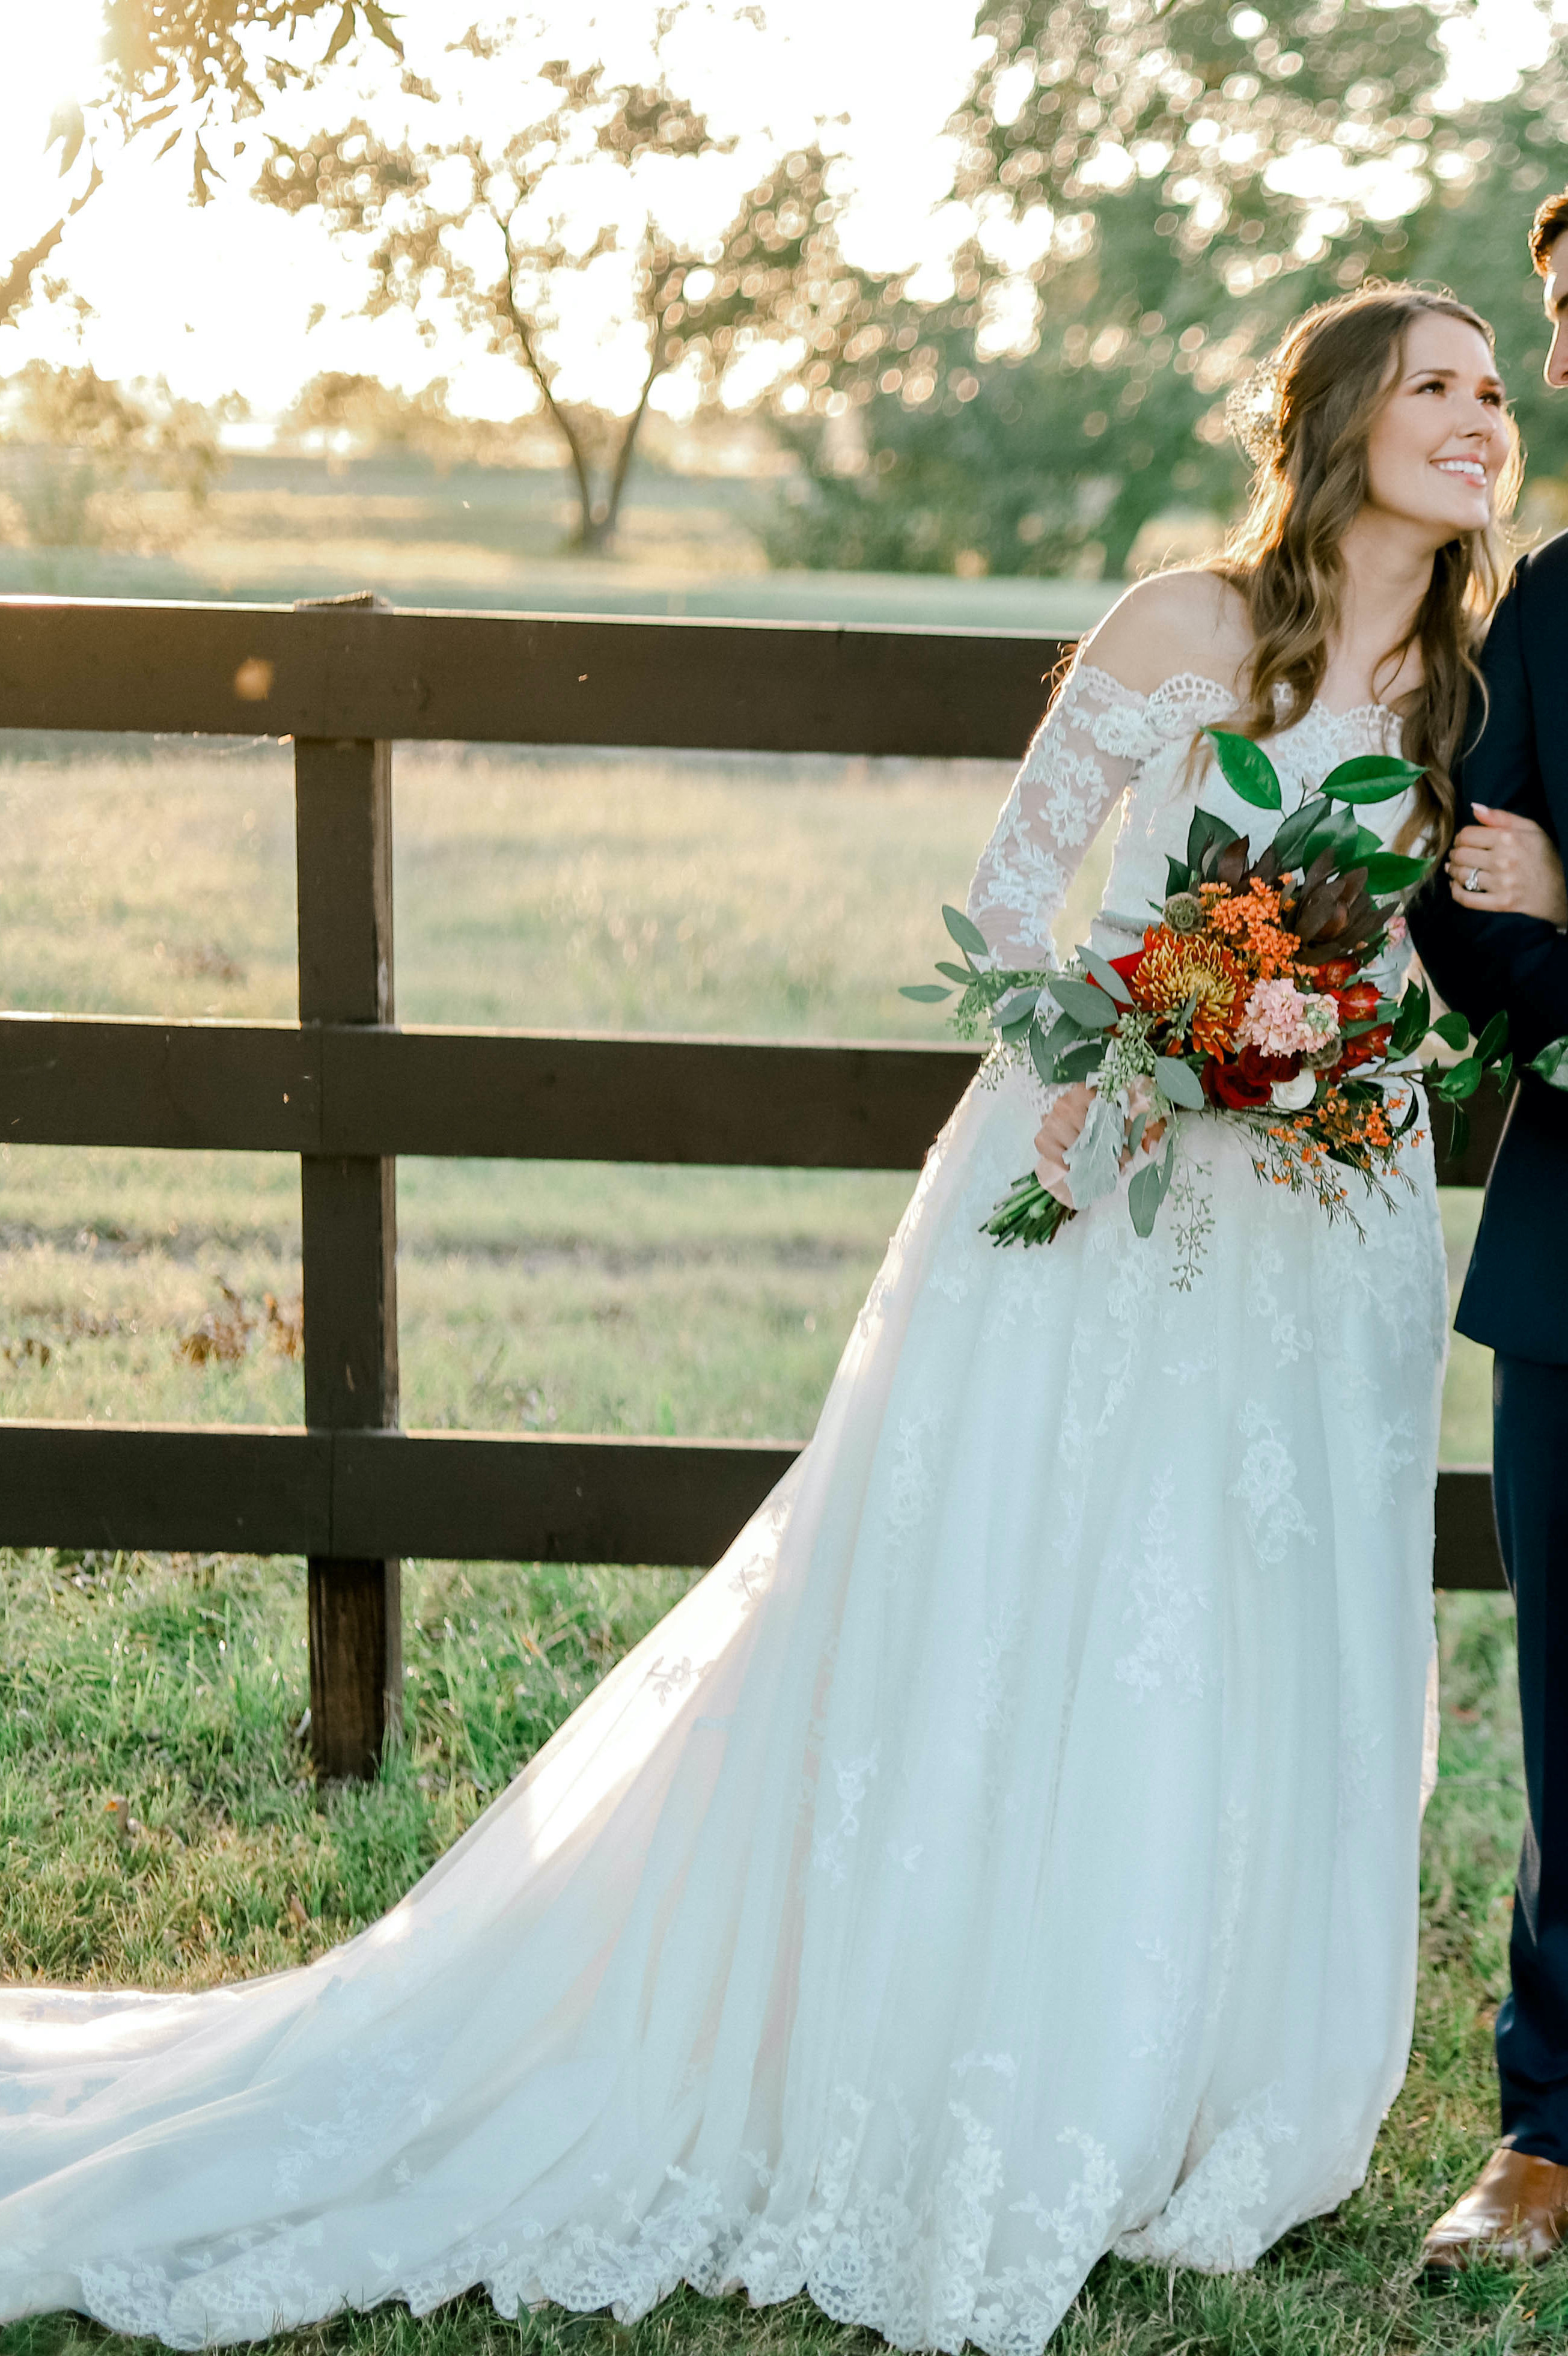 Anomalie creates online custom wedding dresses, including boho gowns with long lace off-the-shoulder sleeves and flowy skirt.